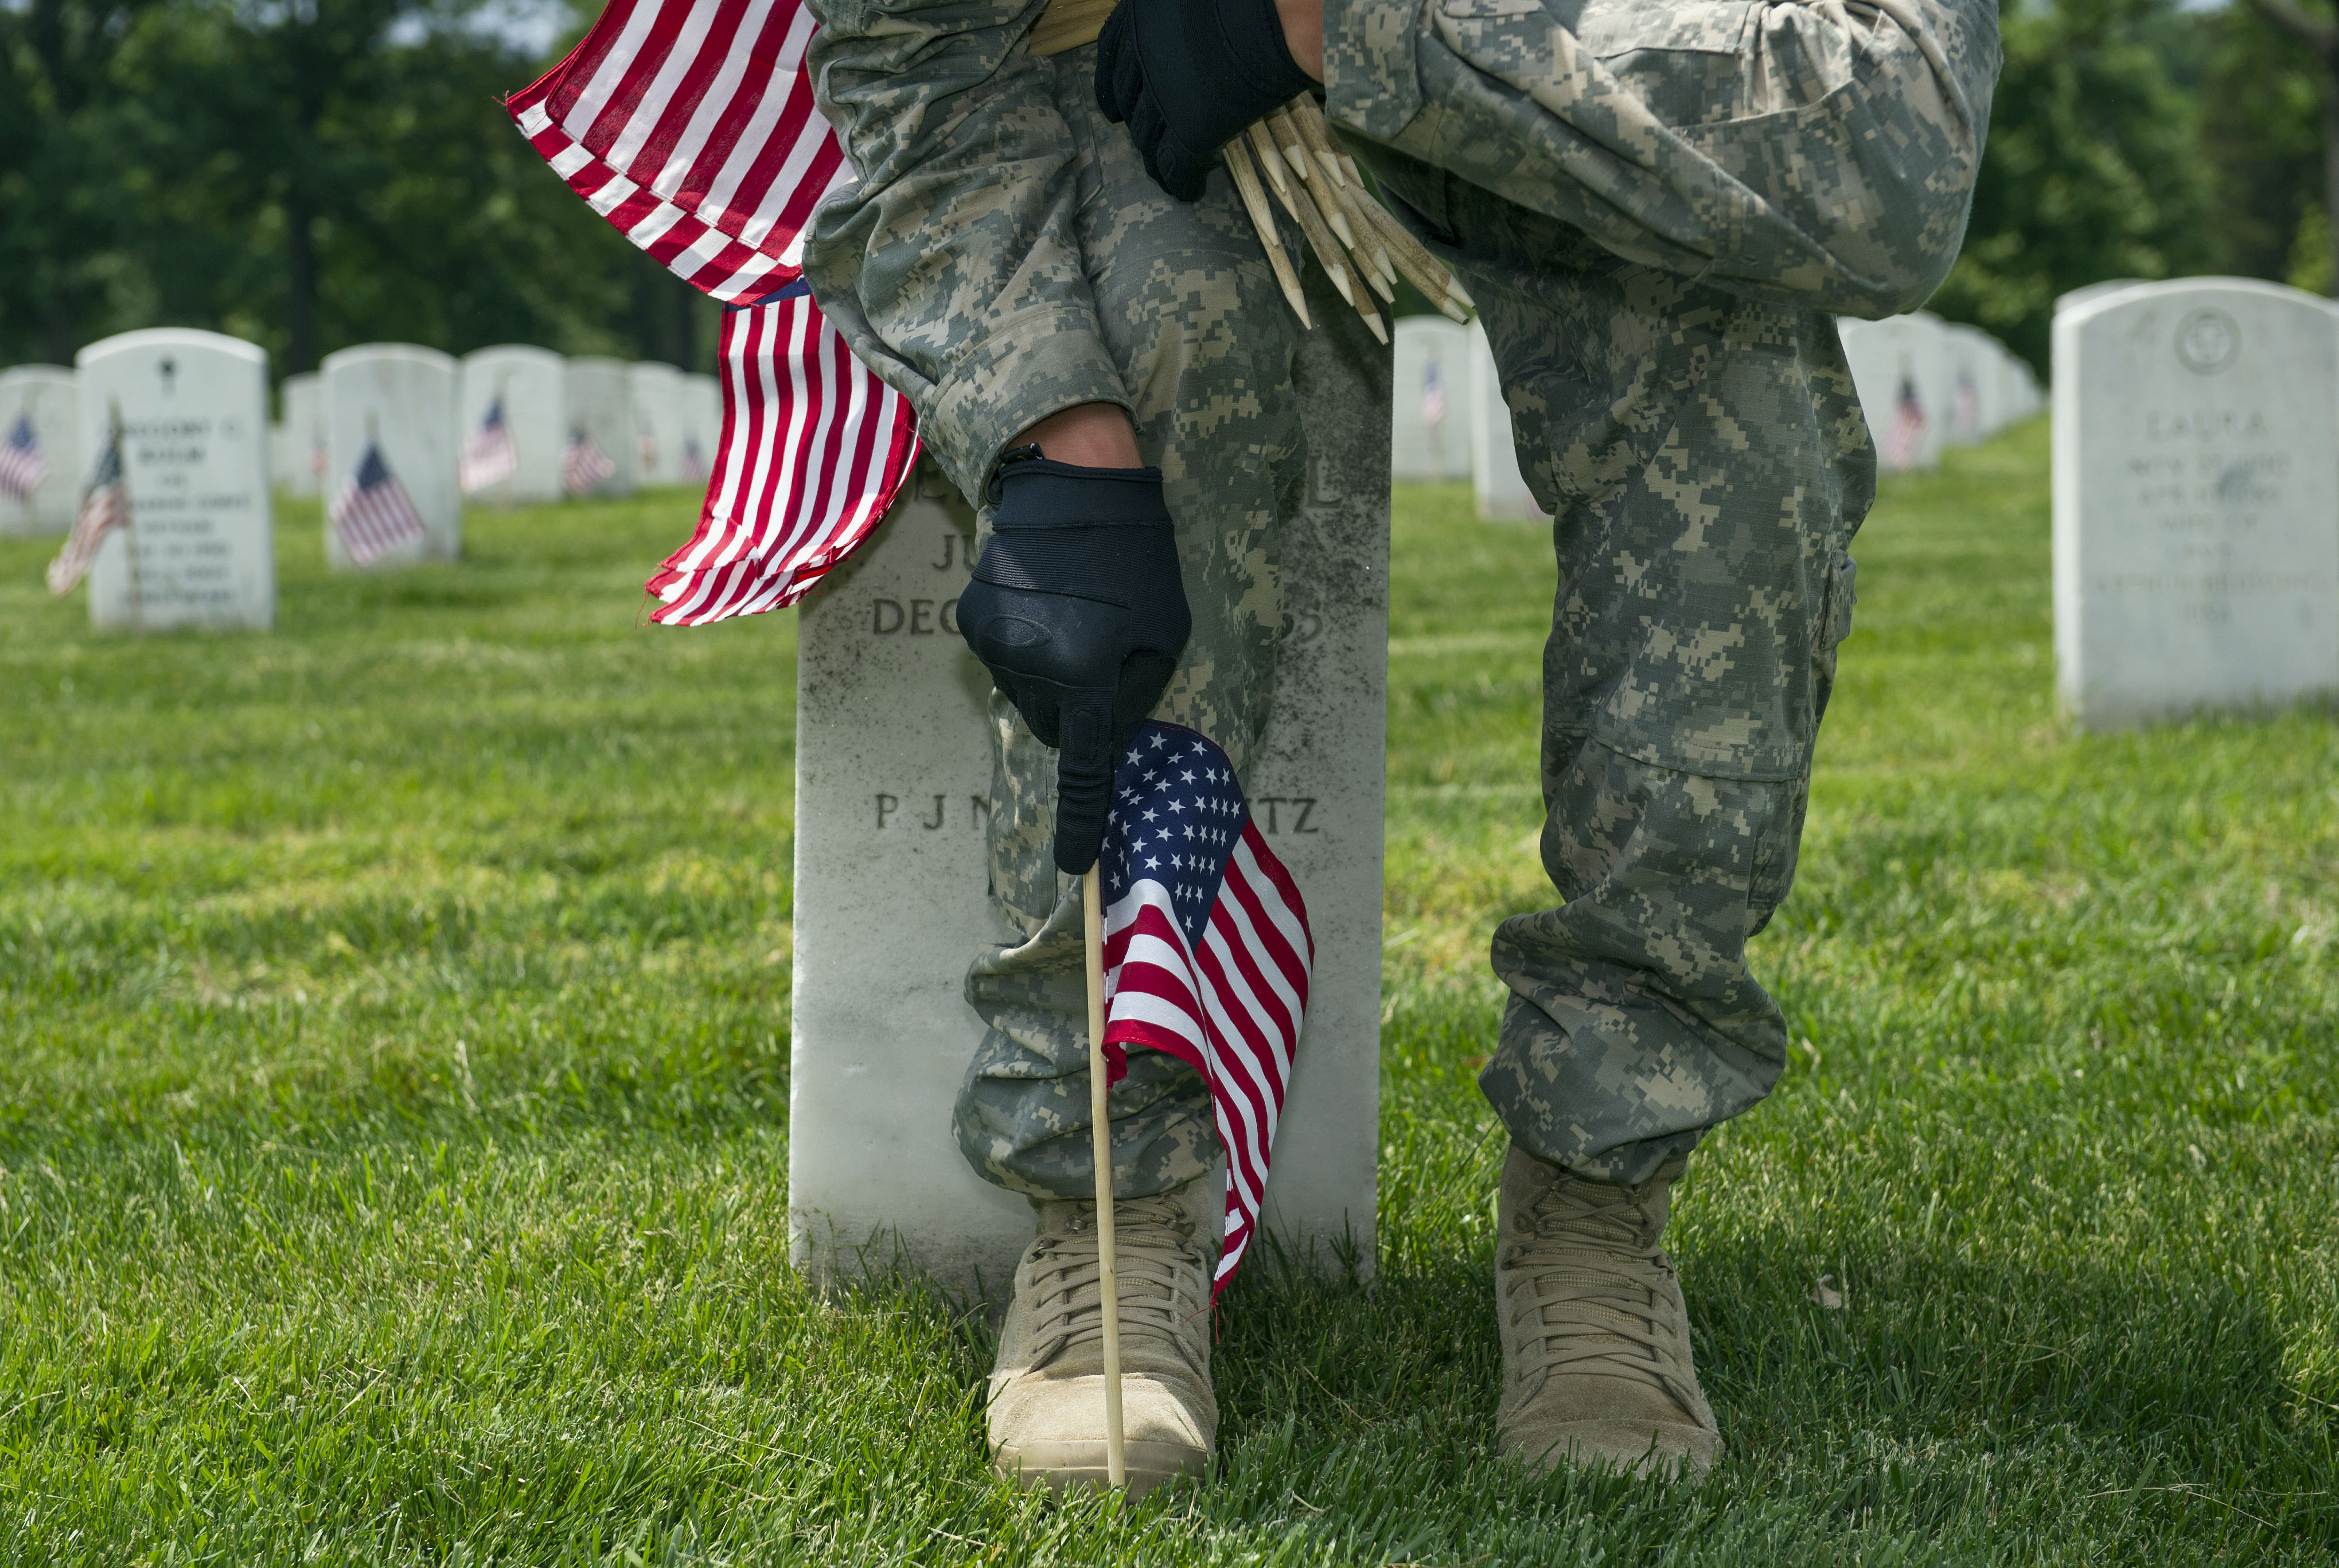 Flags being placed on Arlington National Cemetery graves